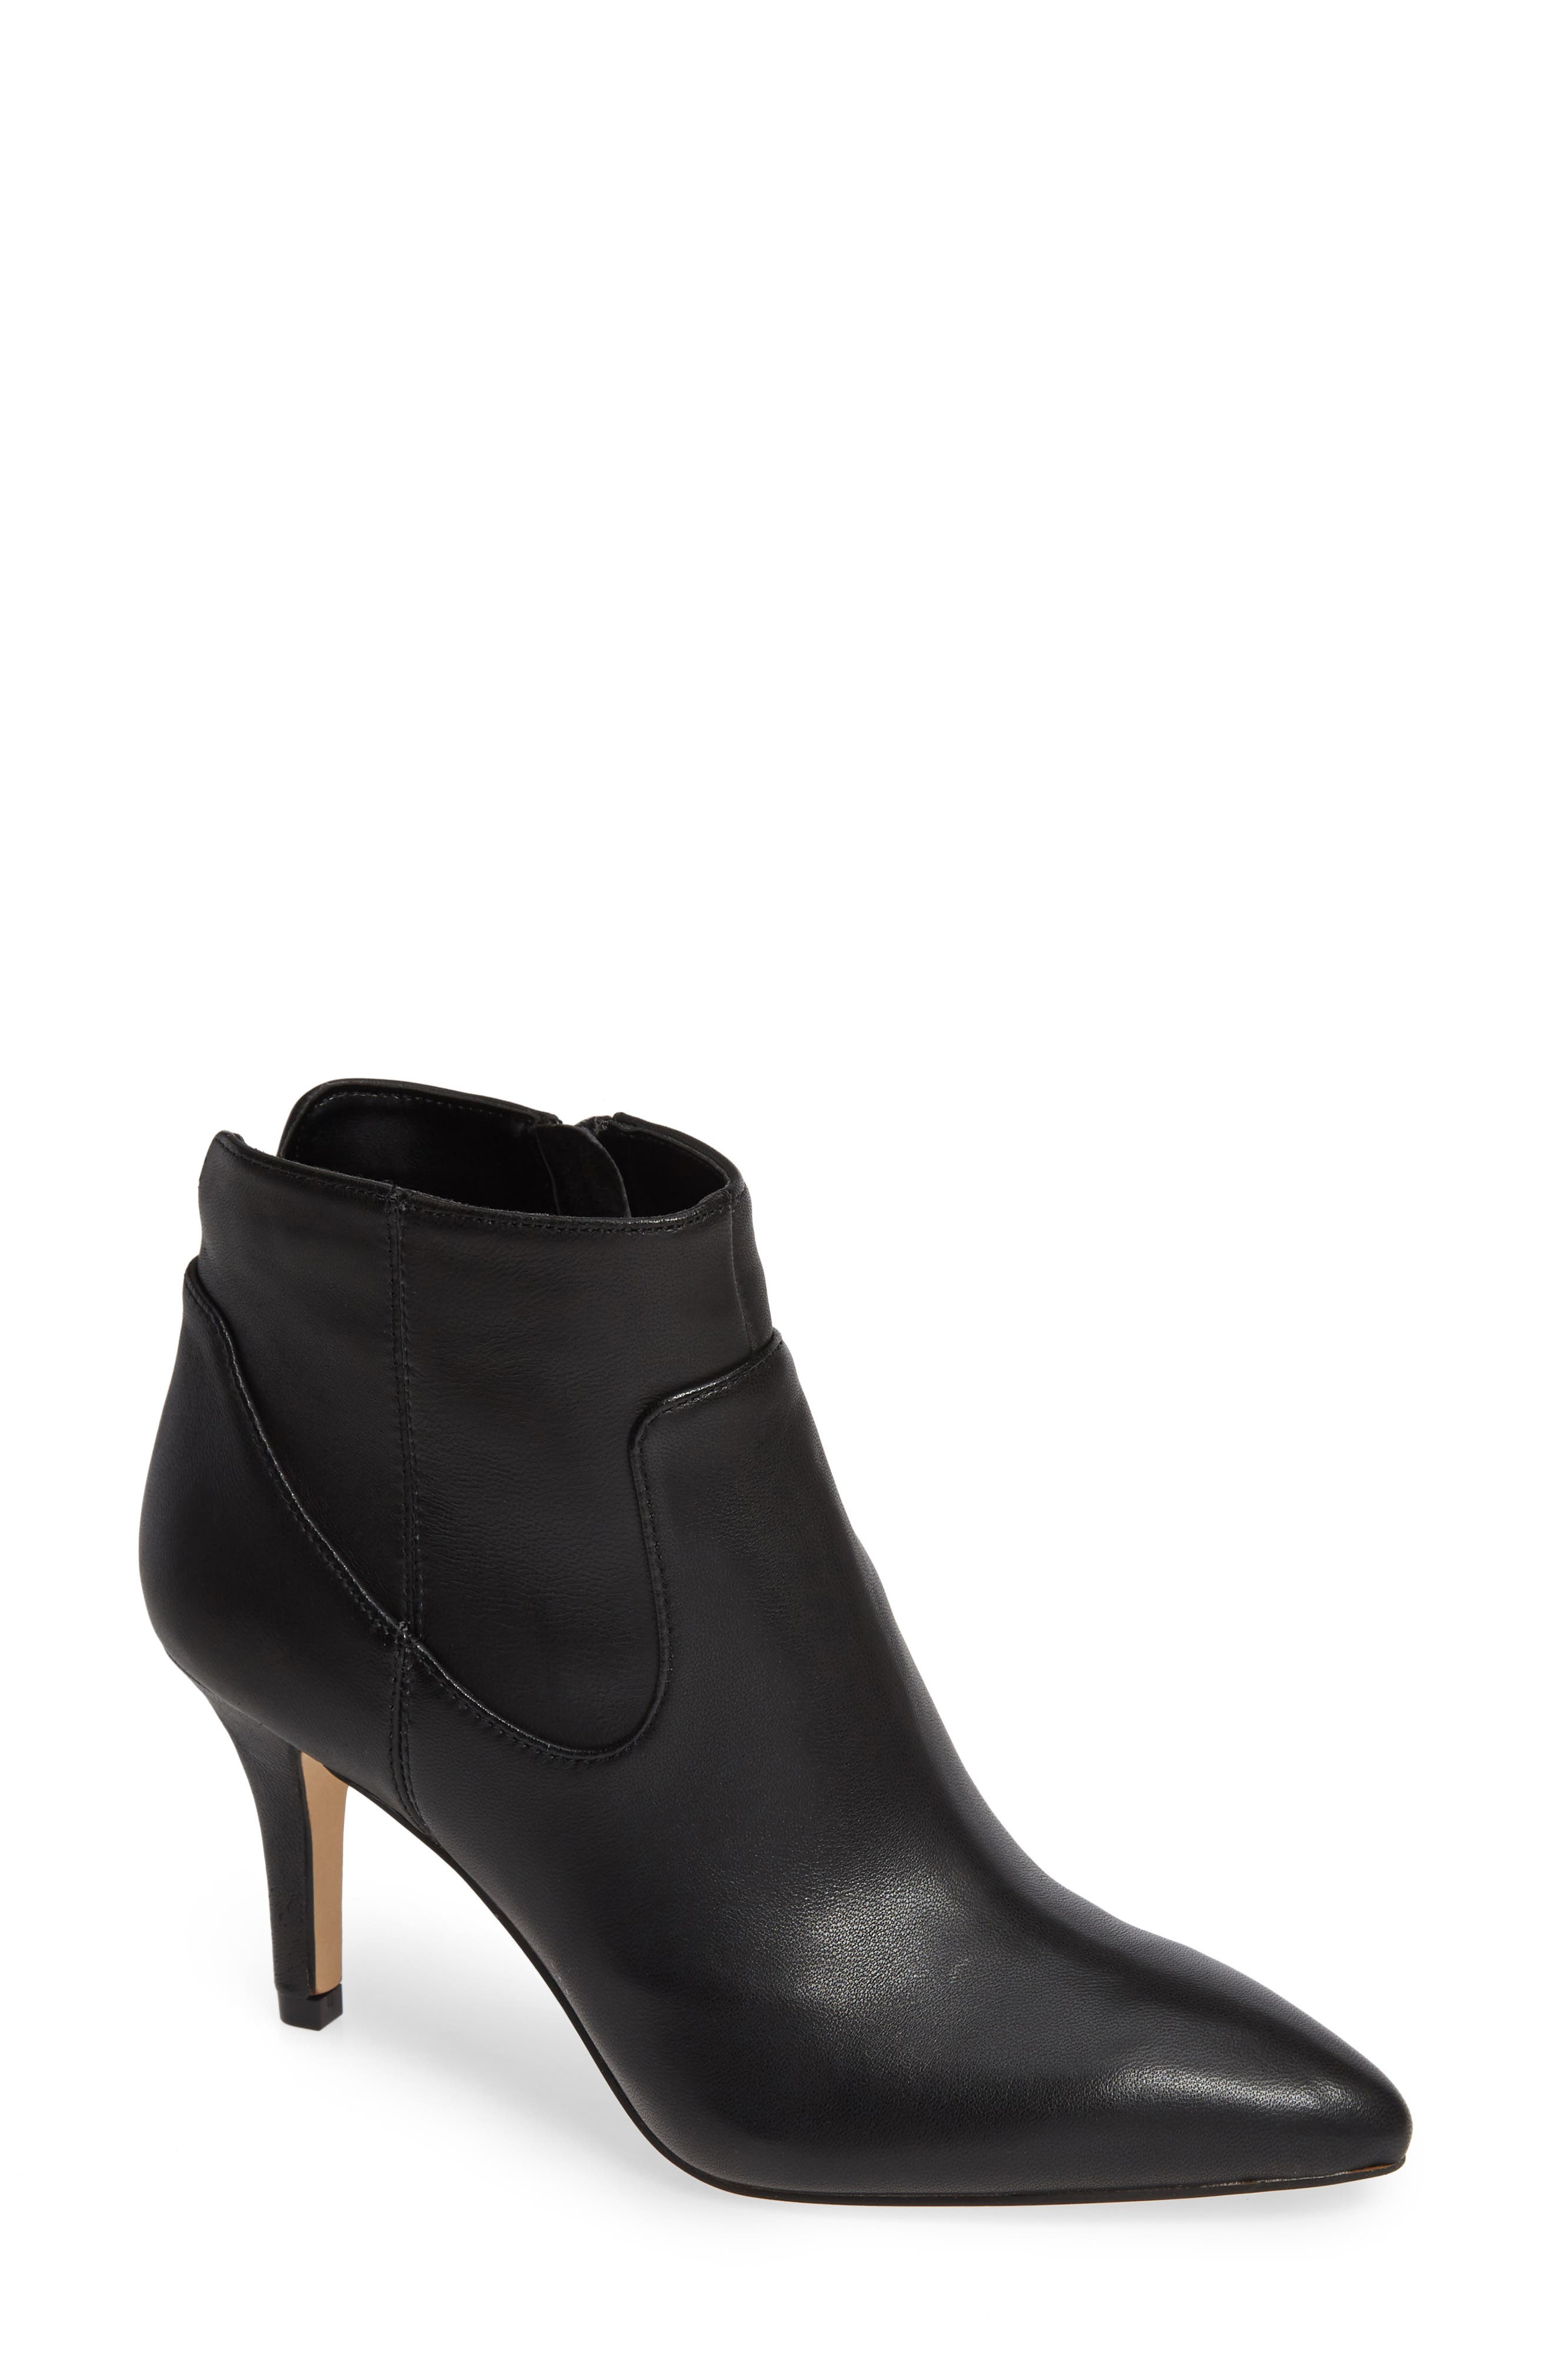 SOLE SOCIETY Raphaela Bootie, Main, color, BLACK LEATHER